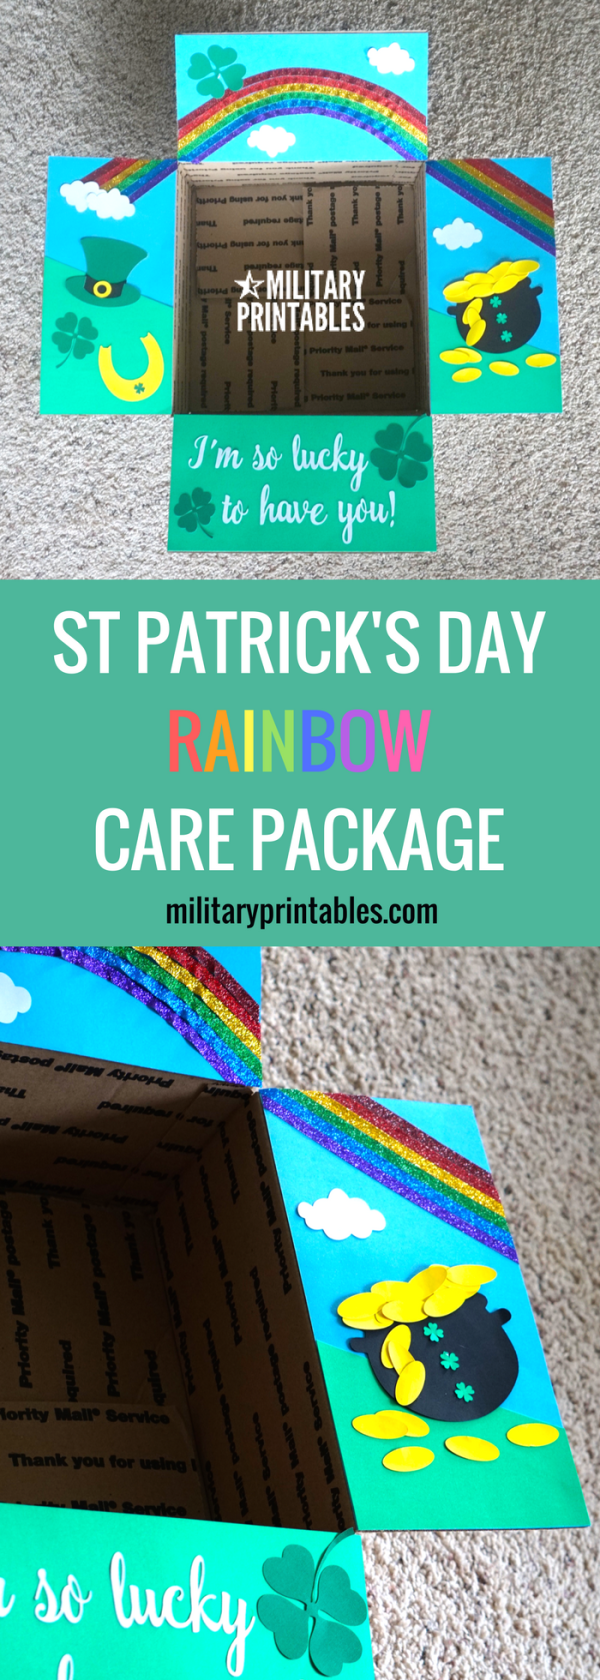 St Patrick's Day Rainbow Care Package